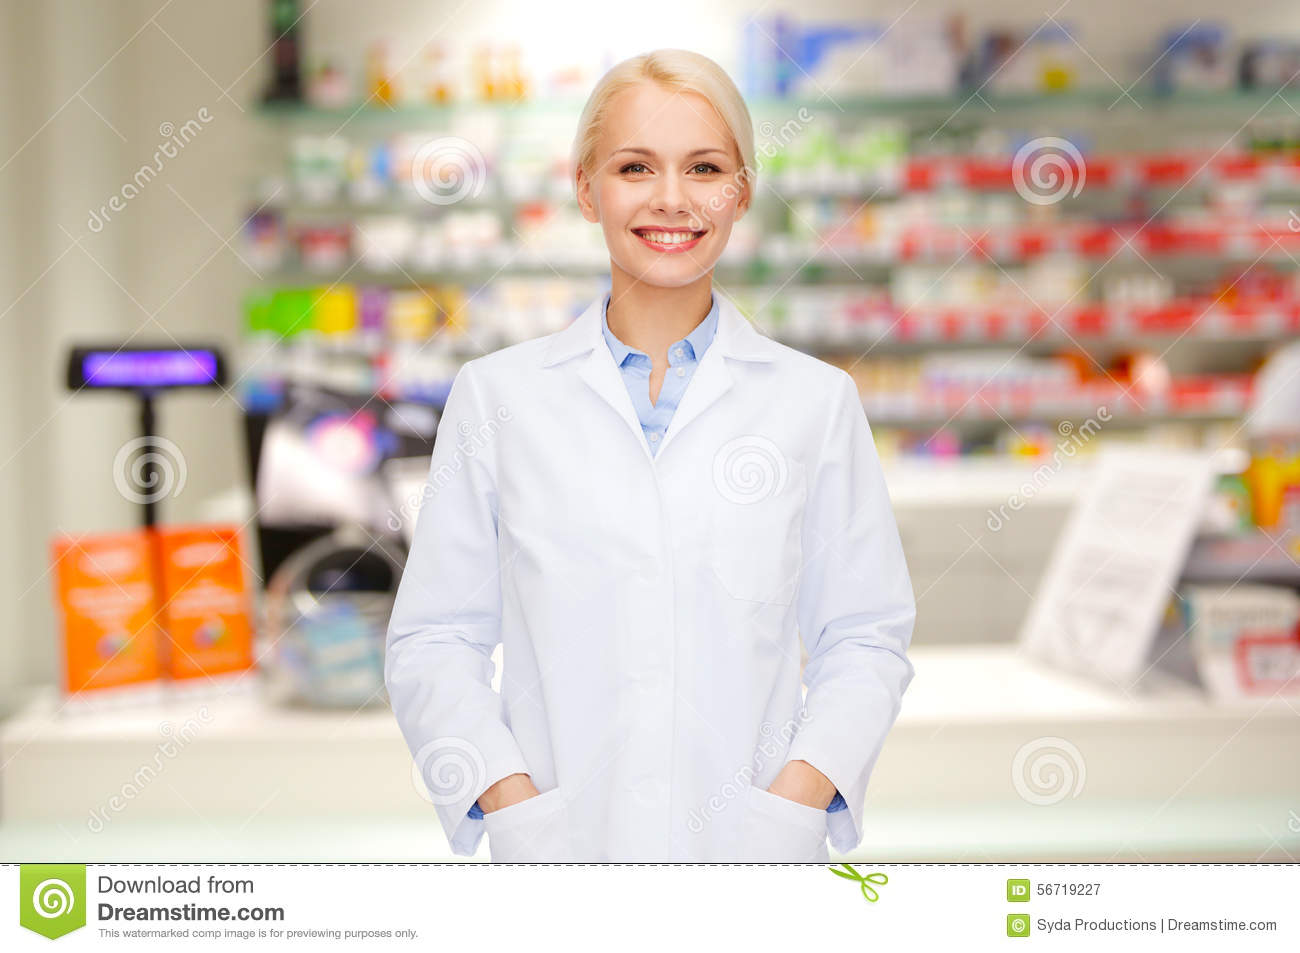 my work in health care as a pharmacist Pharmacy technician as clinical experience  is work as a pharmacy technician clinical experience  - the interaction of various members of the health care team .